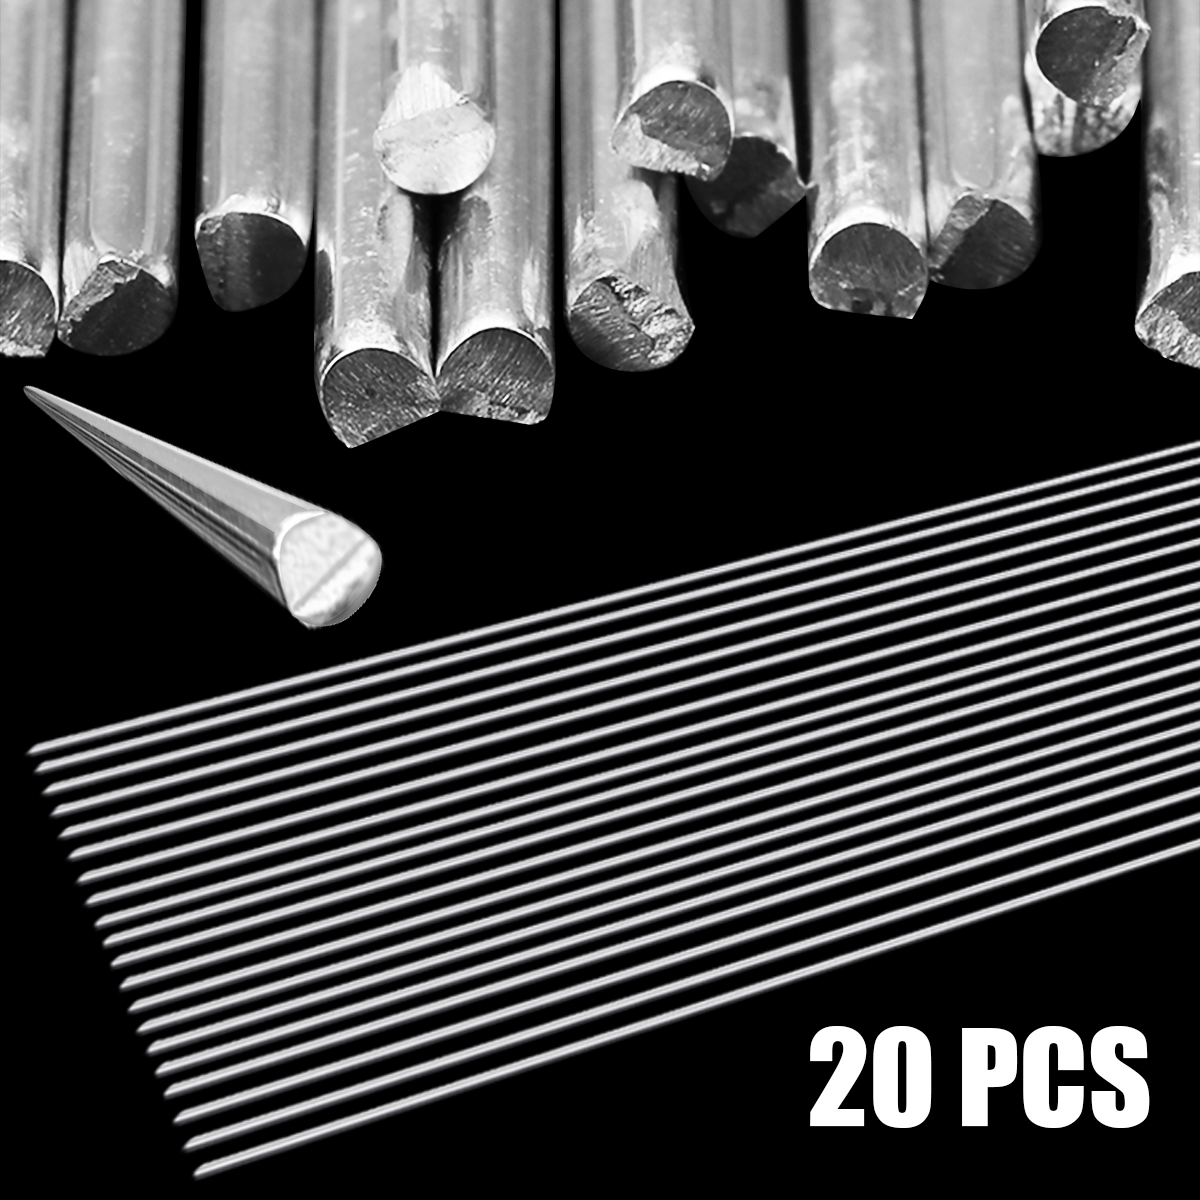 20pcs 2.0mm*500mm Silver Welding Brazing Rod Aluminum Welding Wire Soldering Rod Set for Industry